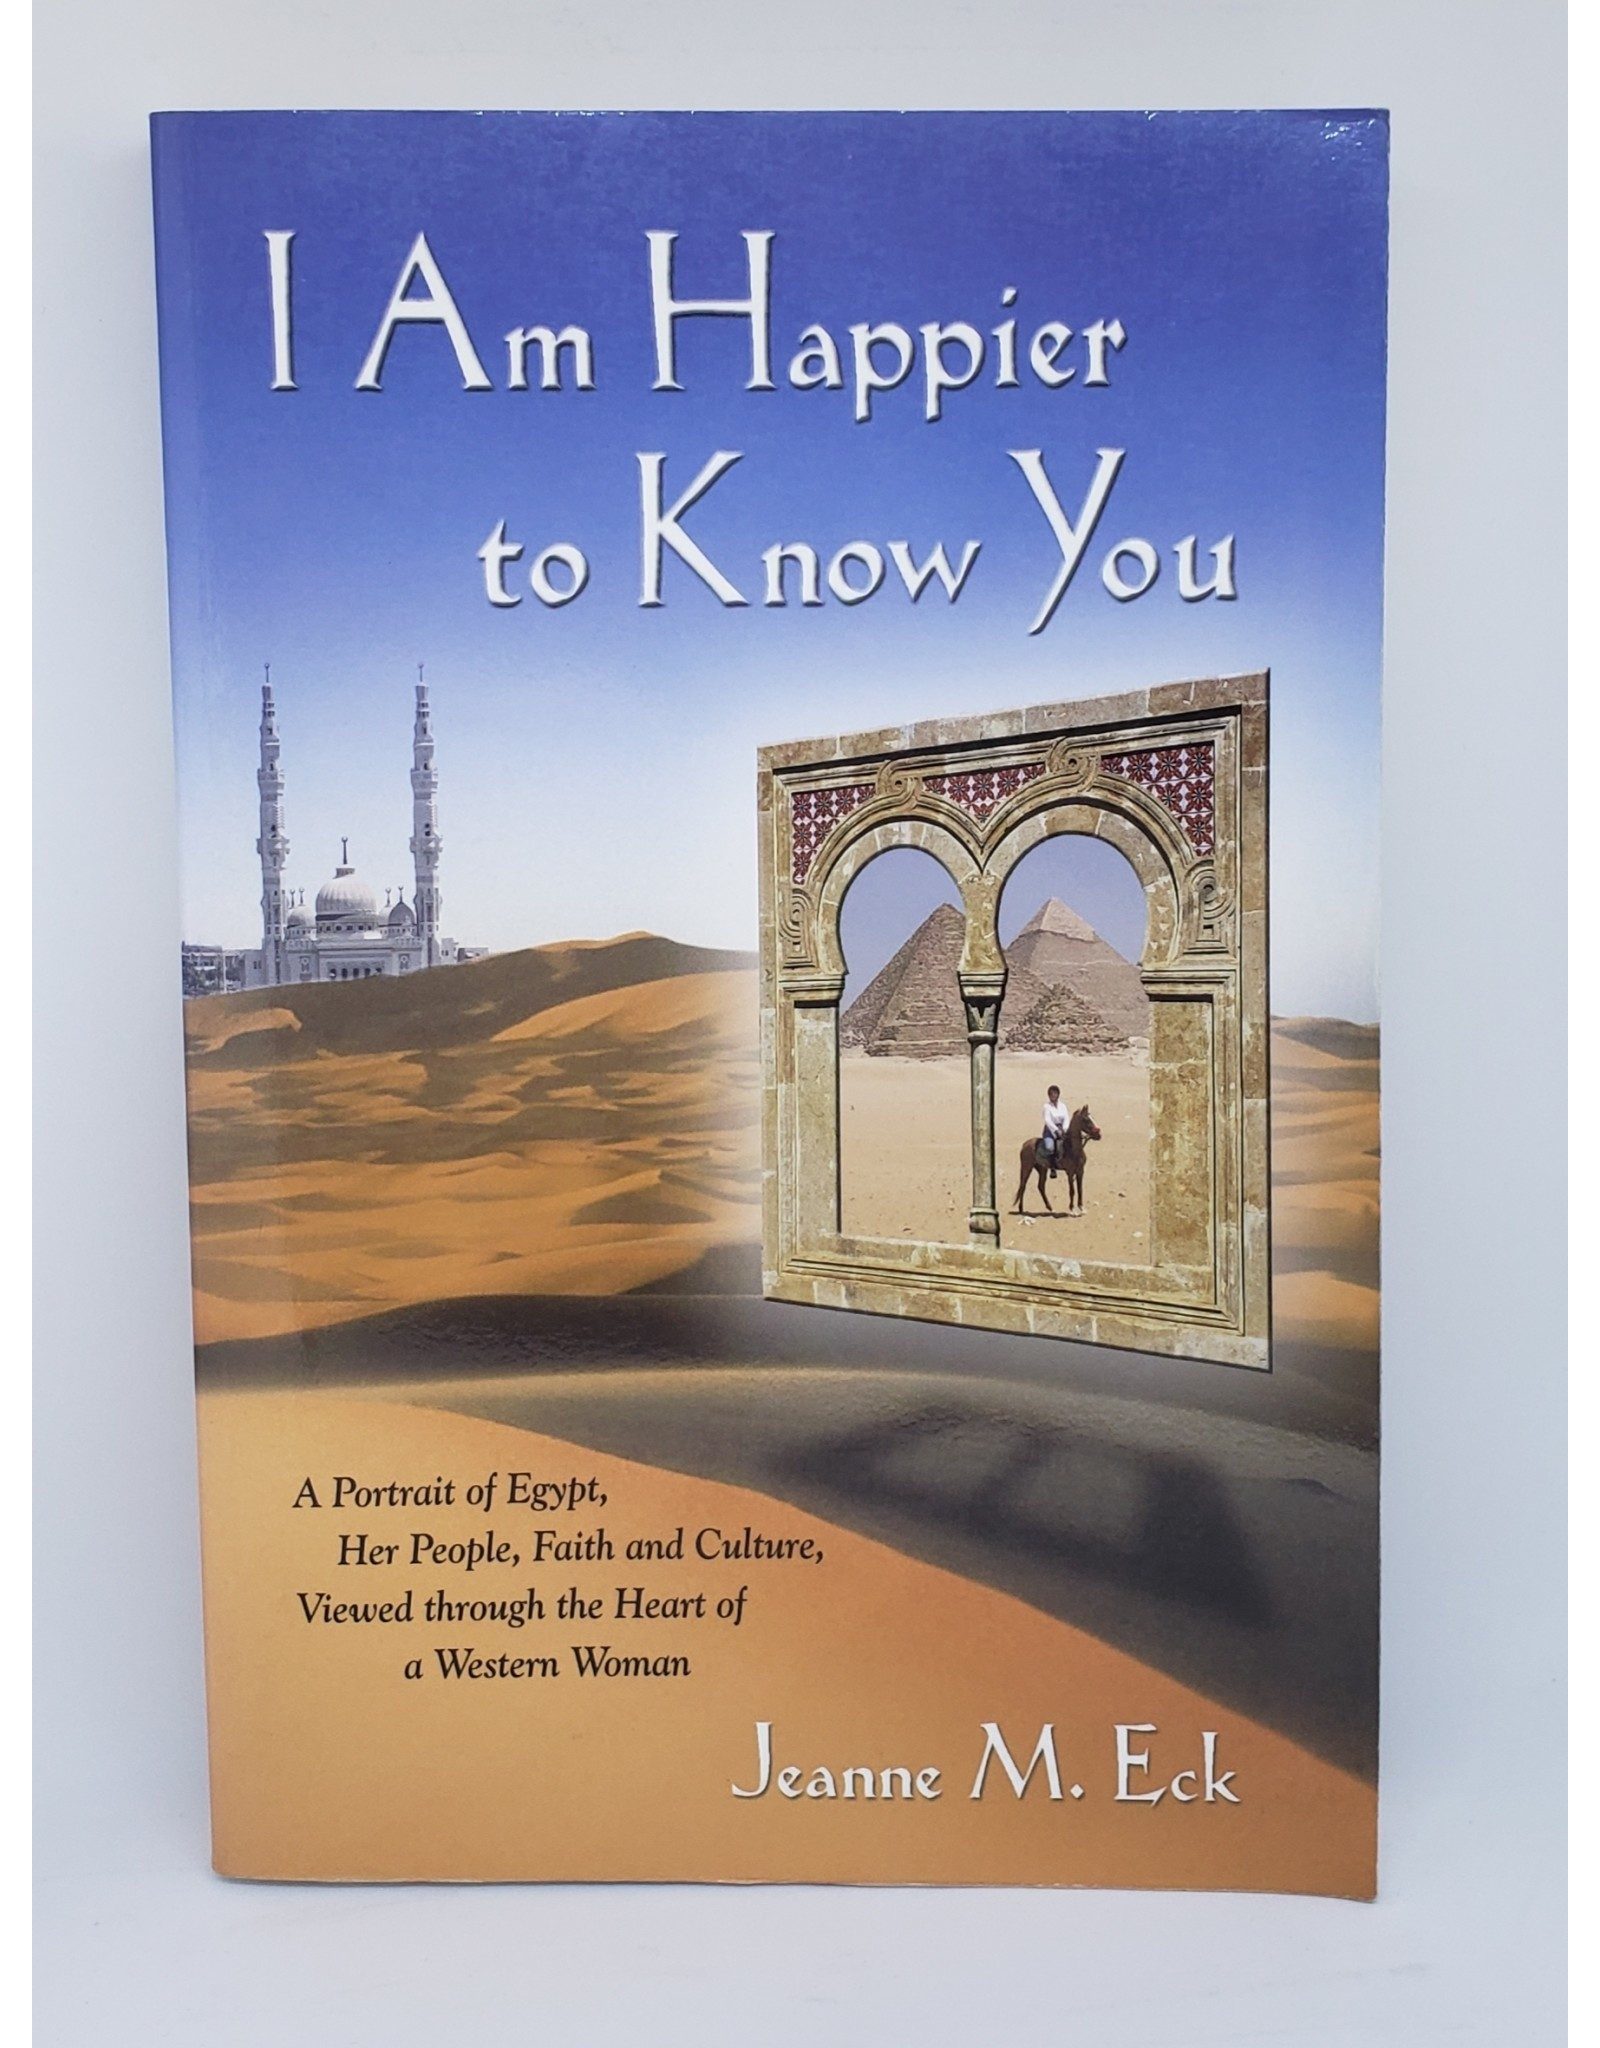 I Am Happier To Know You J. M. Eck